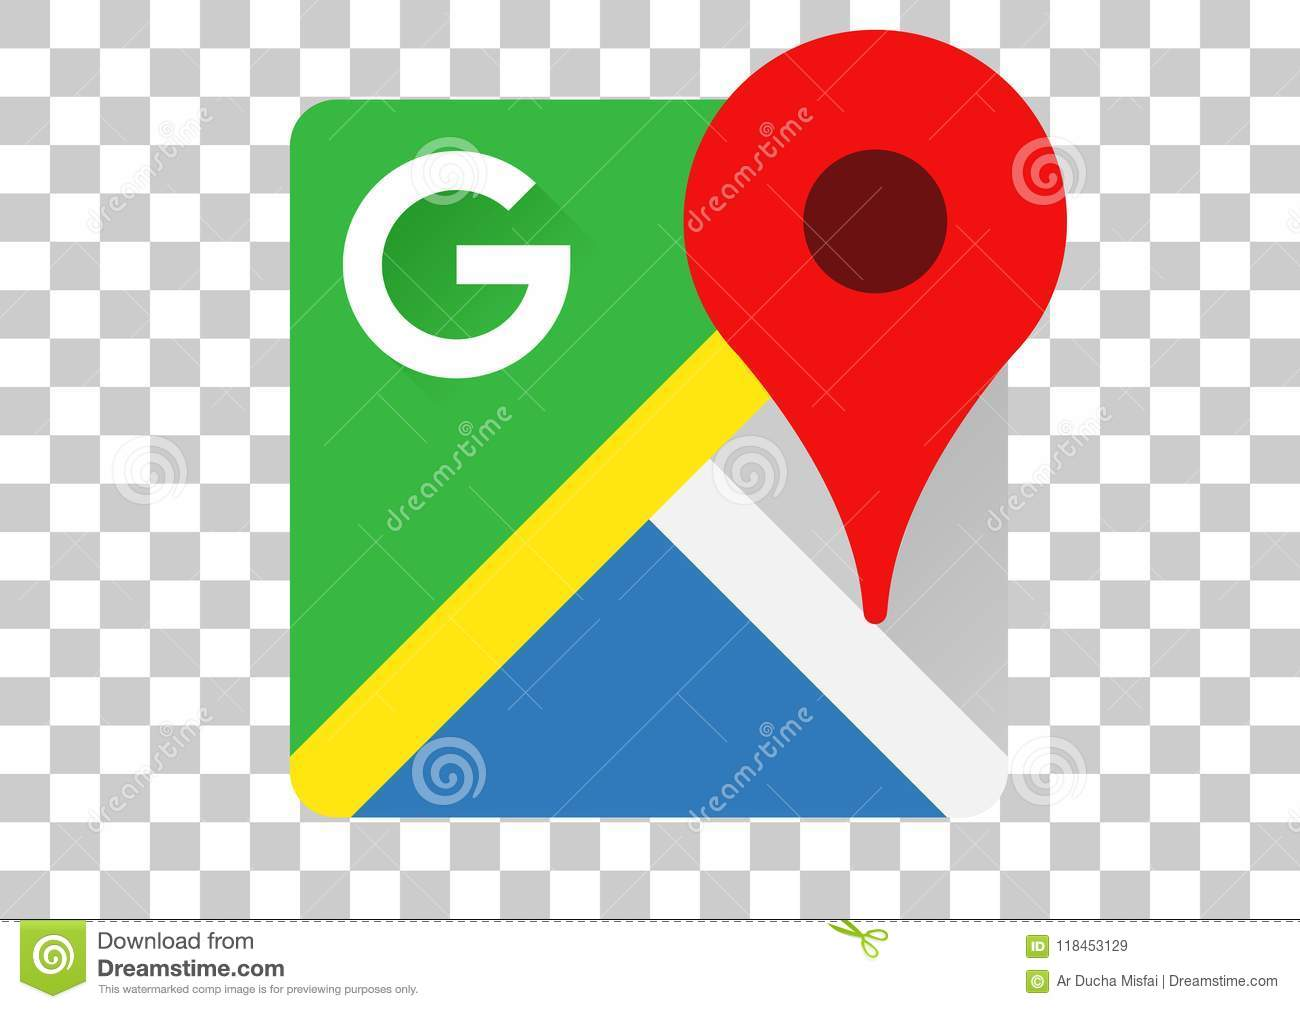 Google maps apk icon editorial stock image. Illustration of ... on google links, google annual report, google privacy, eclipse download, google articles, google social media, google services, google background, google facebook, google help, linux download, google desktop site, google contact, google apps button, google chrome, google icon download,